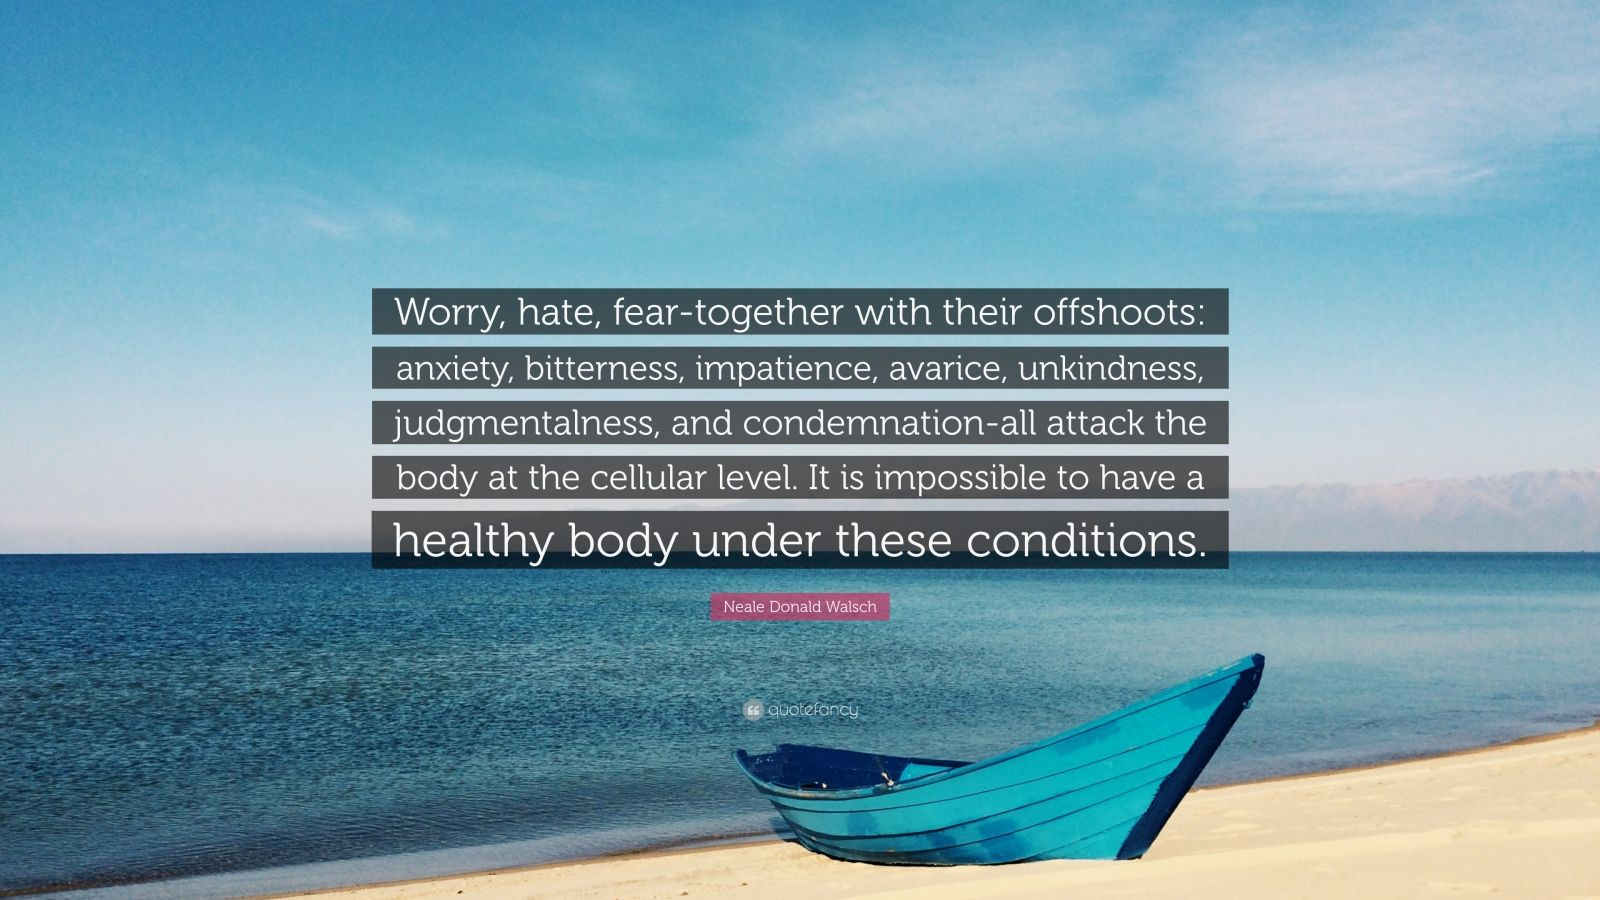 """Neale Donald Walsch Quote: """"Worry, hate, fear-together with their offshoots: anxiety, bitterness, impatience, avarice, unkindness, judgmentalness, and condemnation-all attack the body at the cellular level. It is impossible to have a healthy body under these conditions."""""""